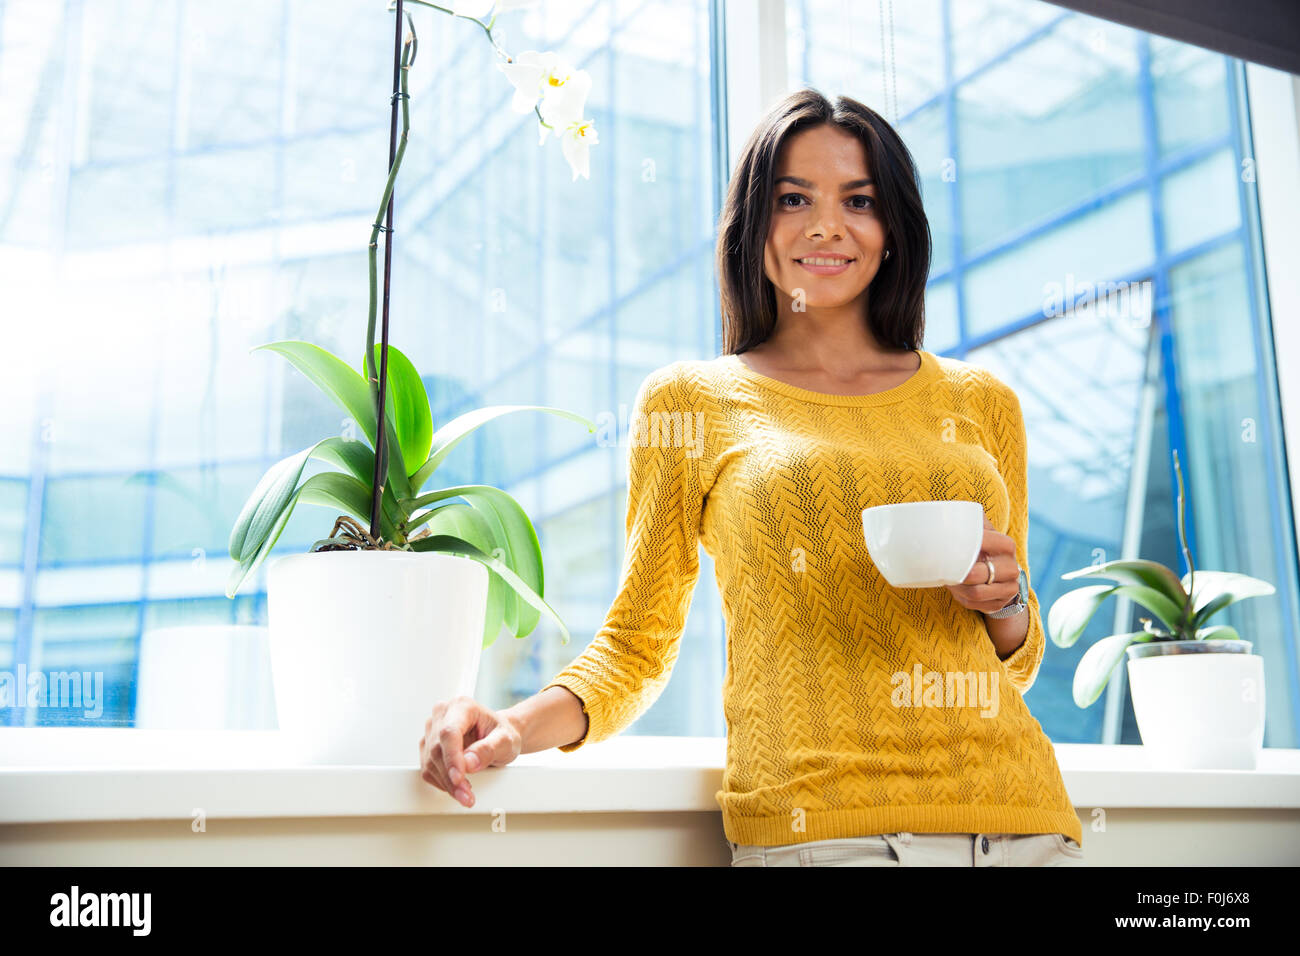 Portrait of a smiling businesswoman standing with cup of coffee in office - Stock Image